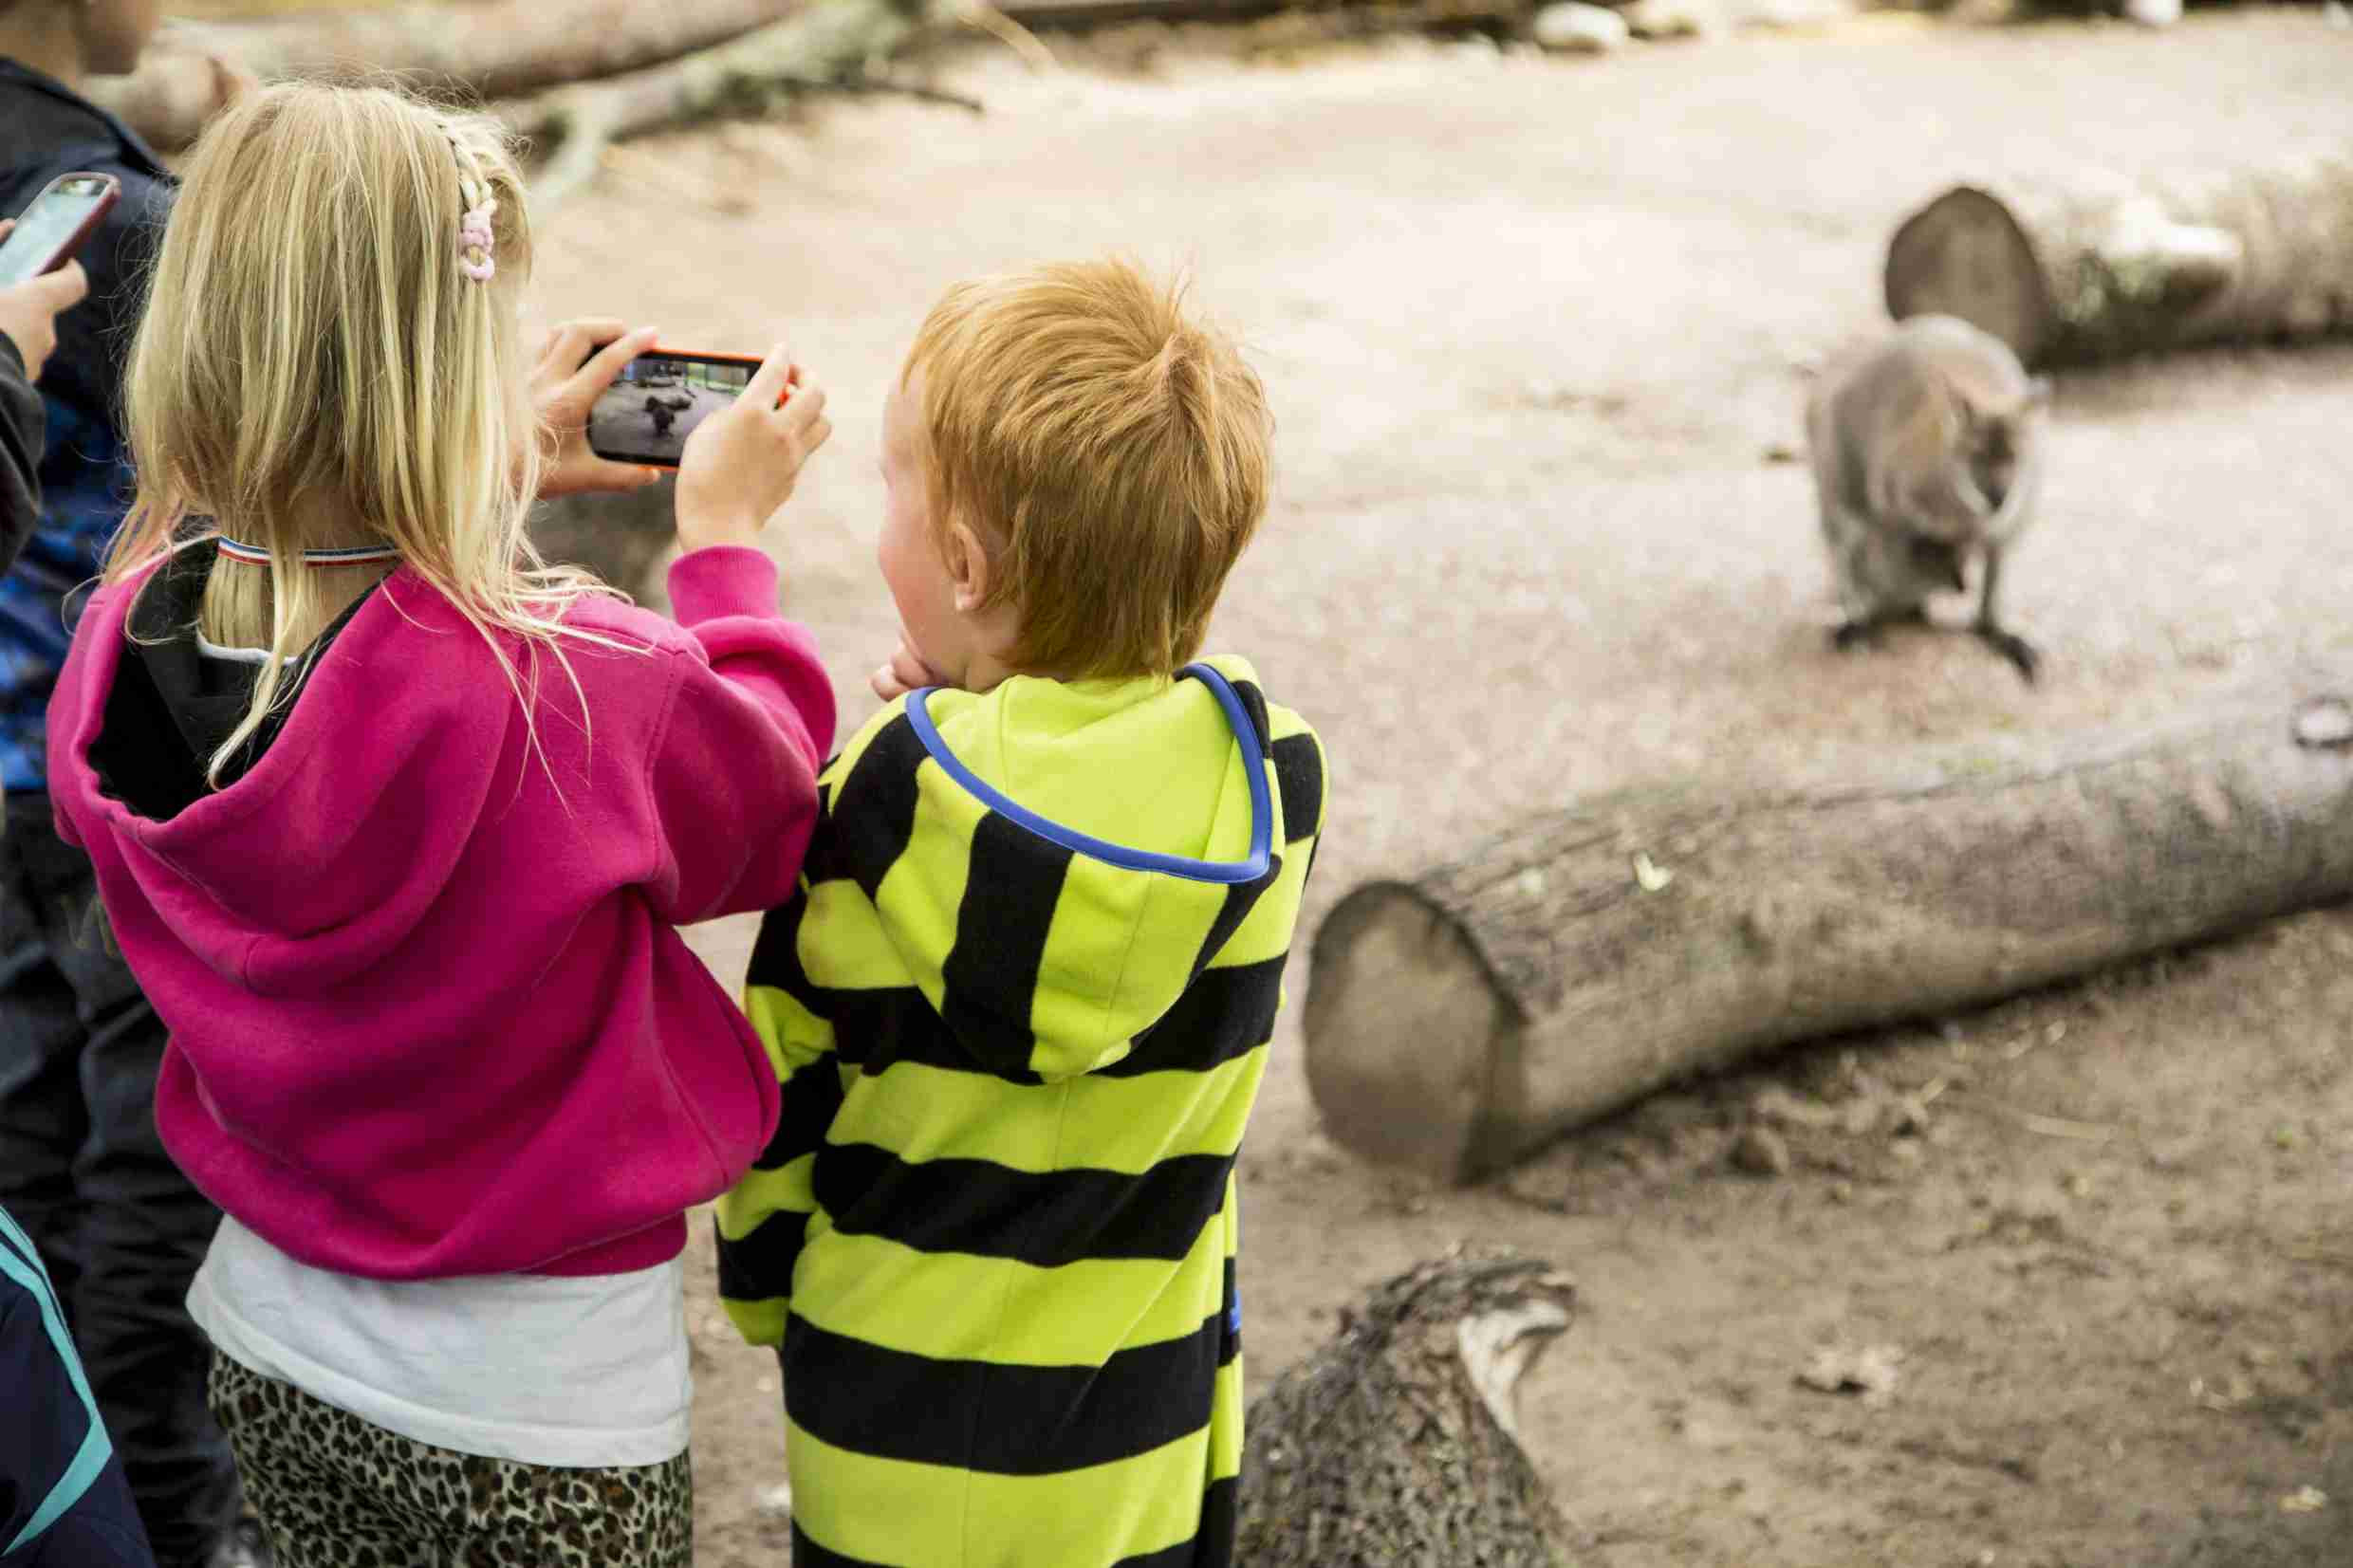 The Zoo in Helsinki is a great place for kids to enjoy the animals and run off some energy. (Photo courtesy of Mari Lehmonen)